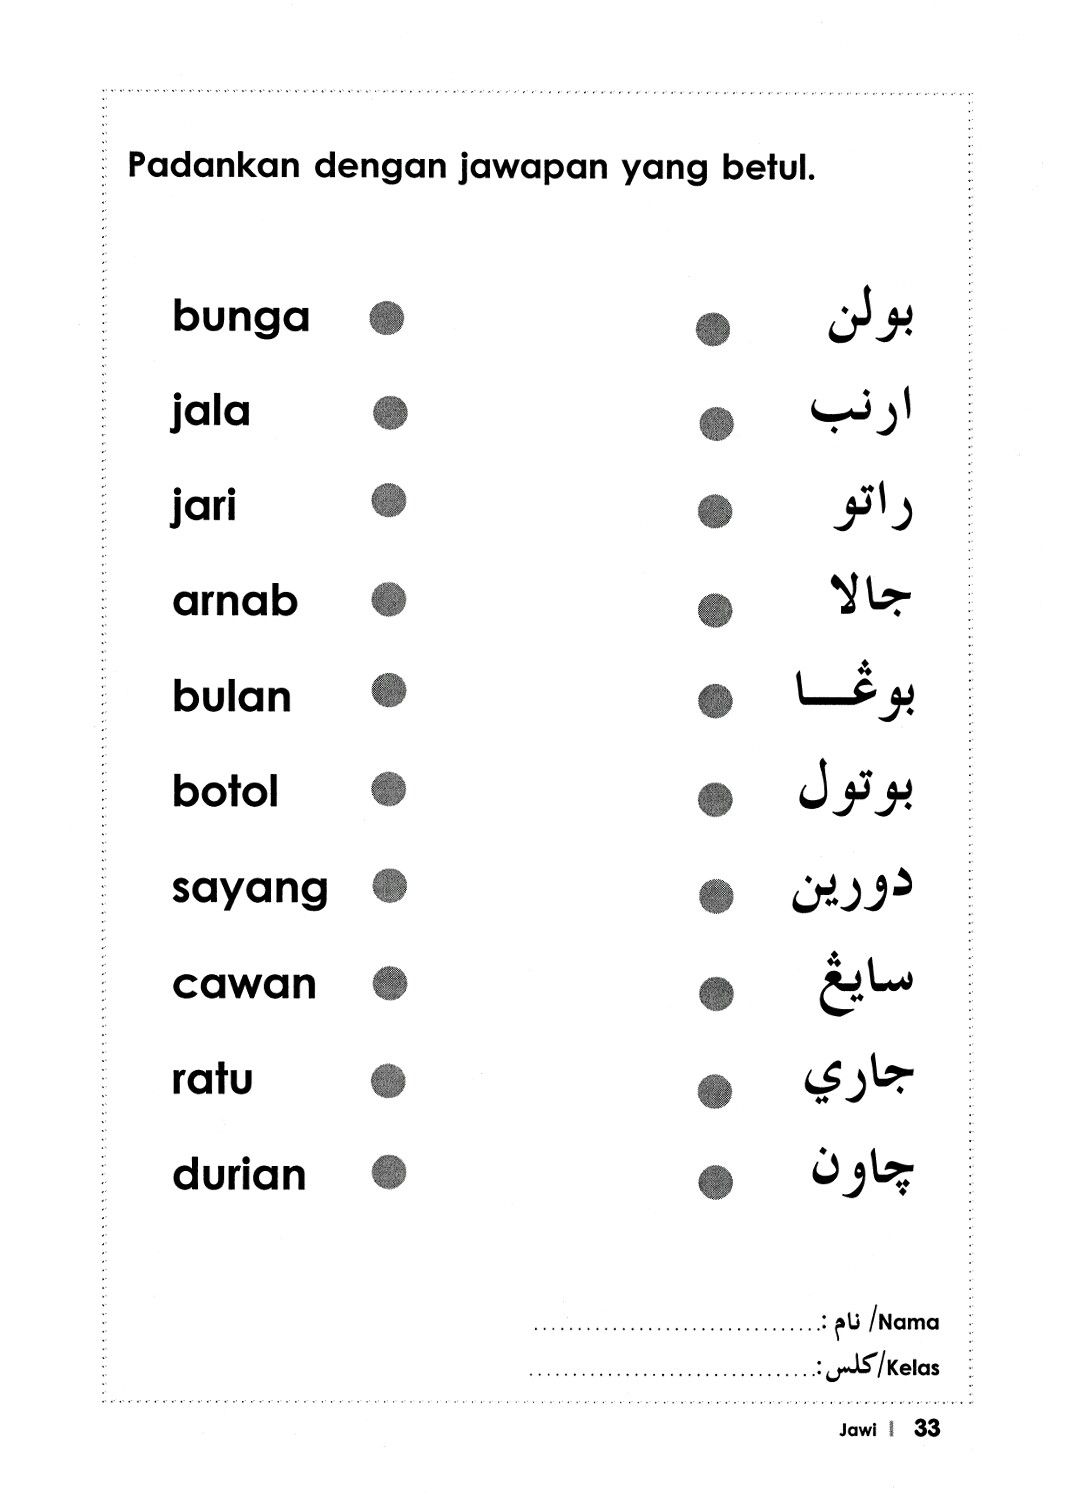 Image Result For Latihan Bahasa Jawi Tahun 2